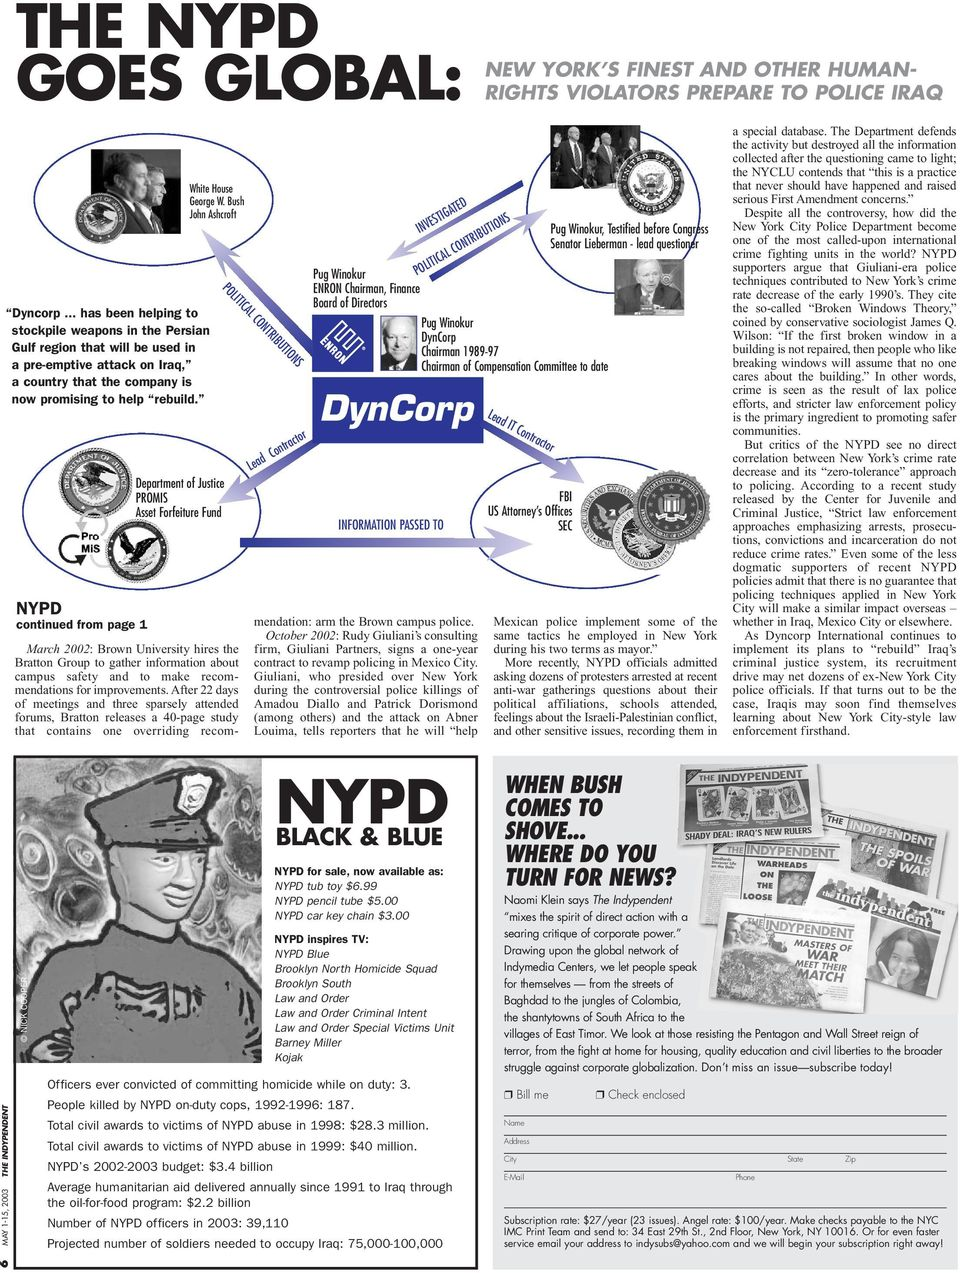 NYPD continued from page 1 White House George W.